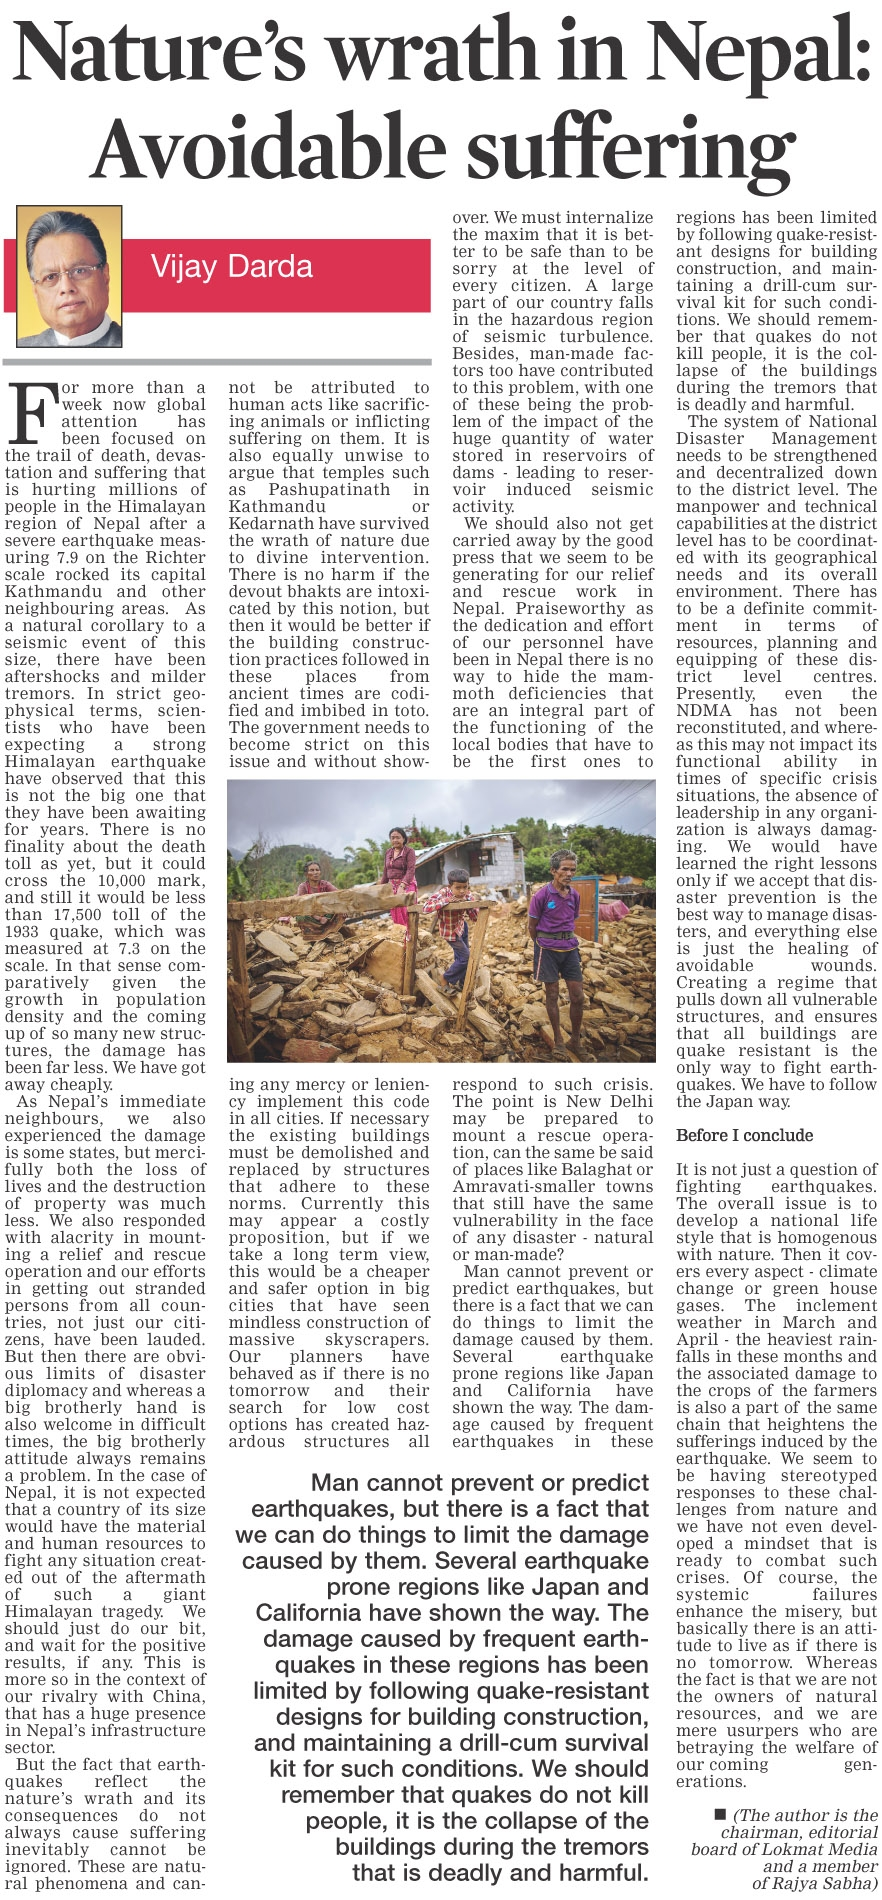 Nature's wrath in Nepal: Avoidable suffering